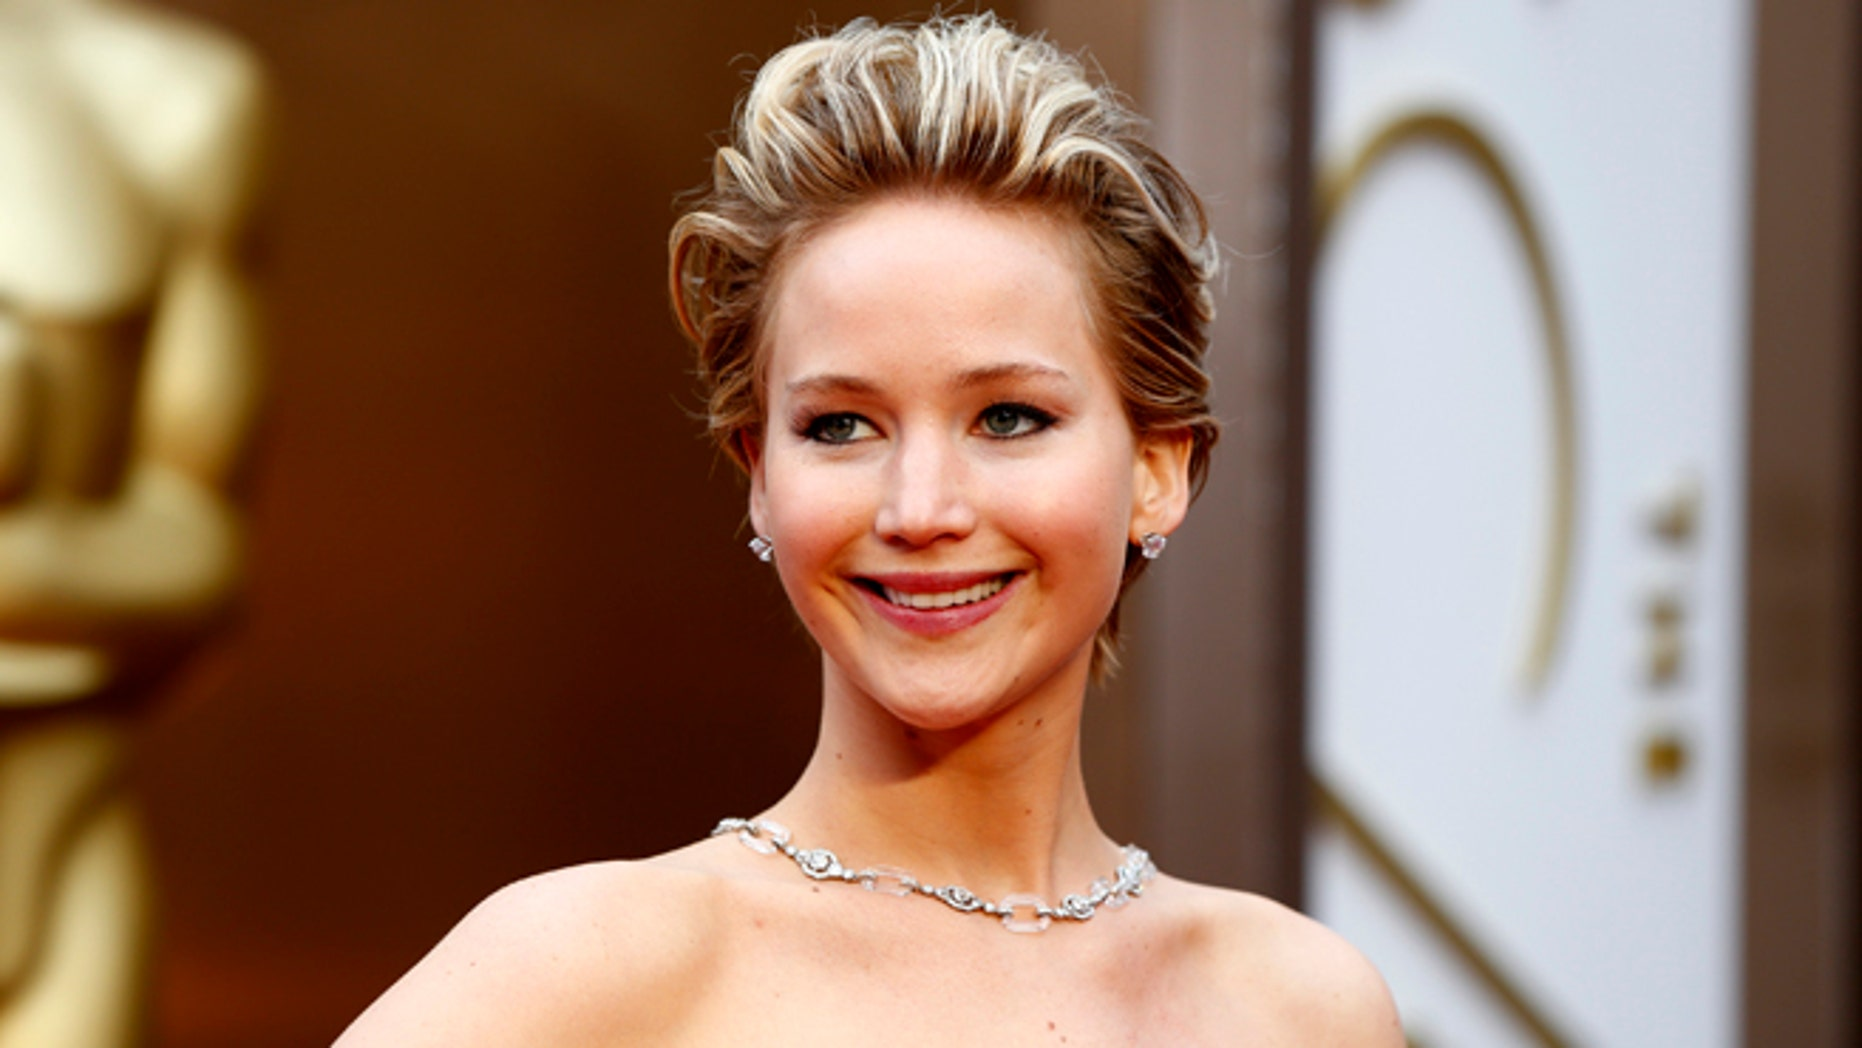 """Jennifer Lawrence, best supporting actress nominee for her role in """"American Hustle,"""" arrives at the 86th Academy Awards in Hollywood, California March 2, 2014.    REUTERS/Lucas Jackson (UNITED STATES  - Tags: ENTERTAINMENT)  (OSCARS-ARRIVALS) - RTR3FXNL"""